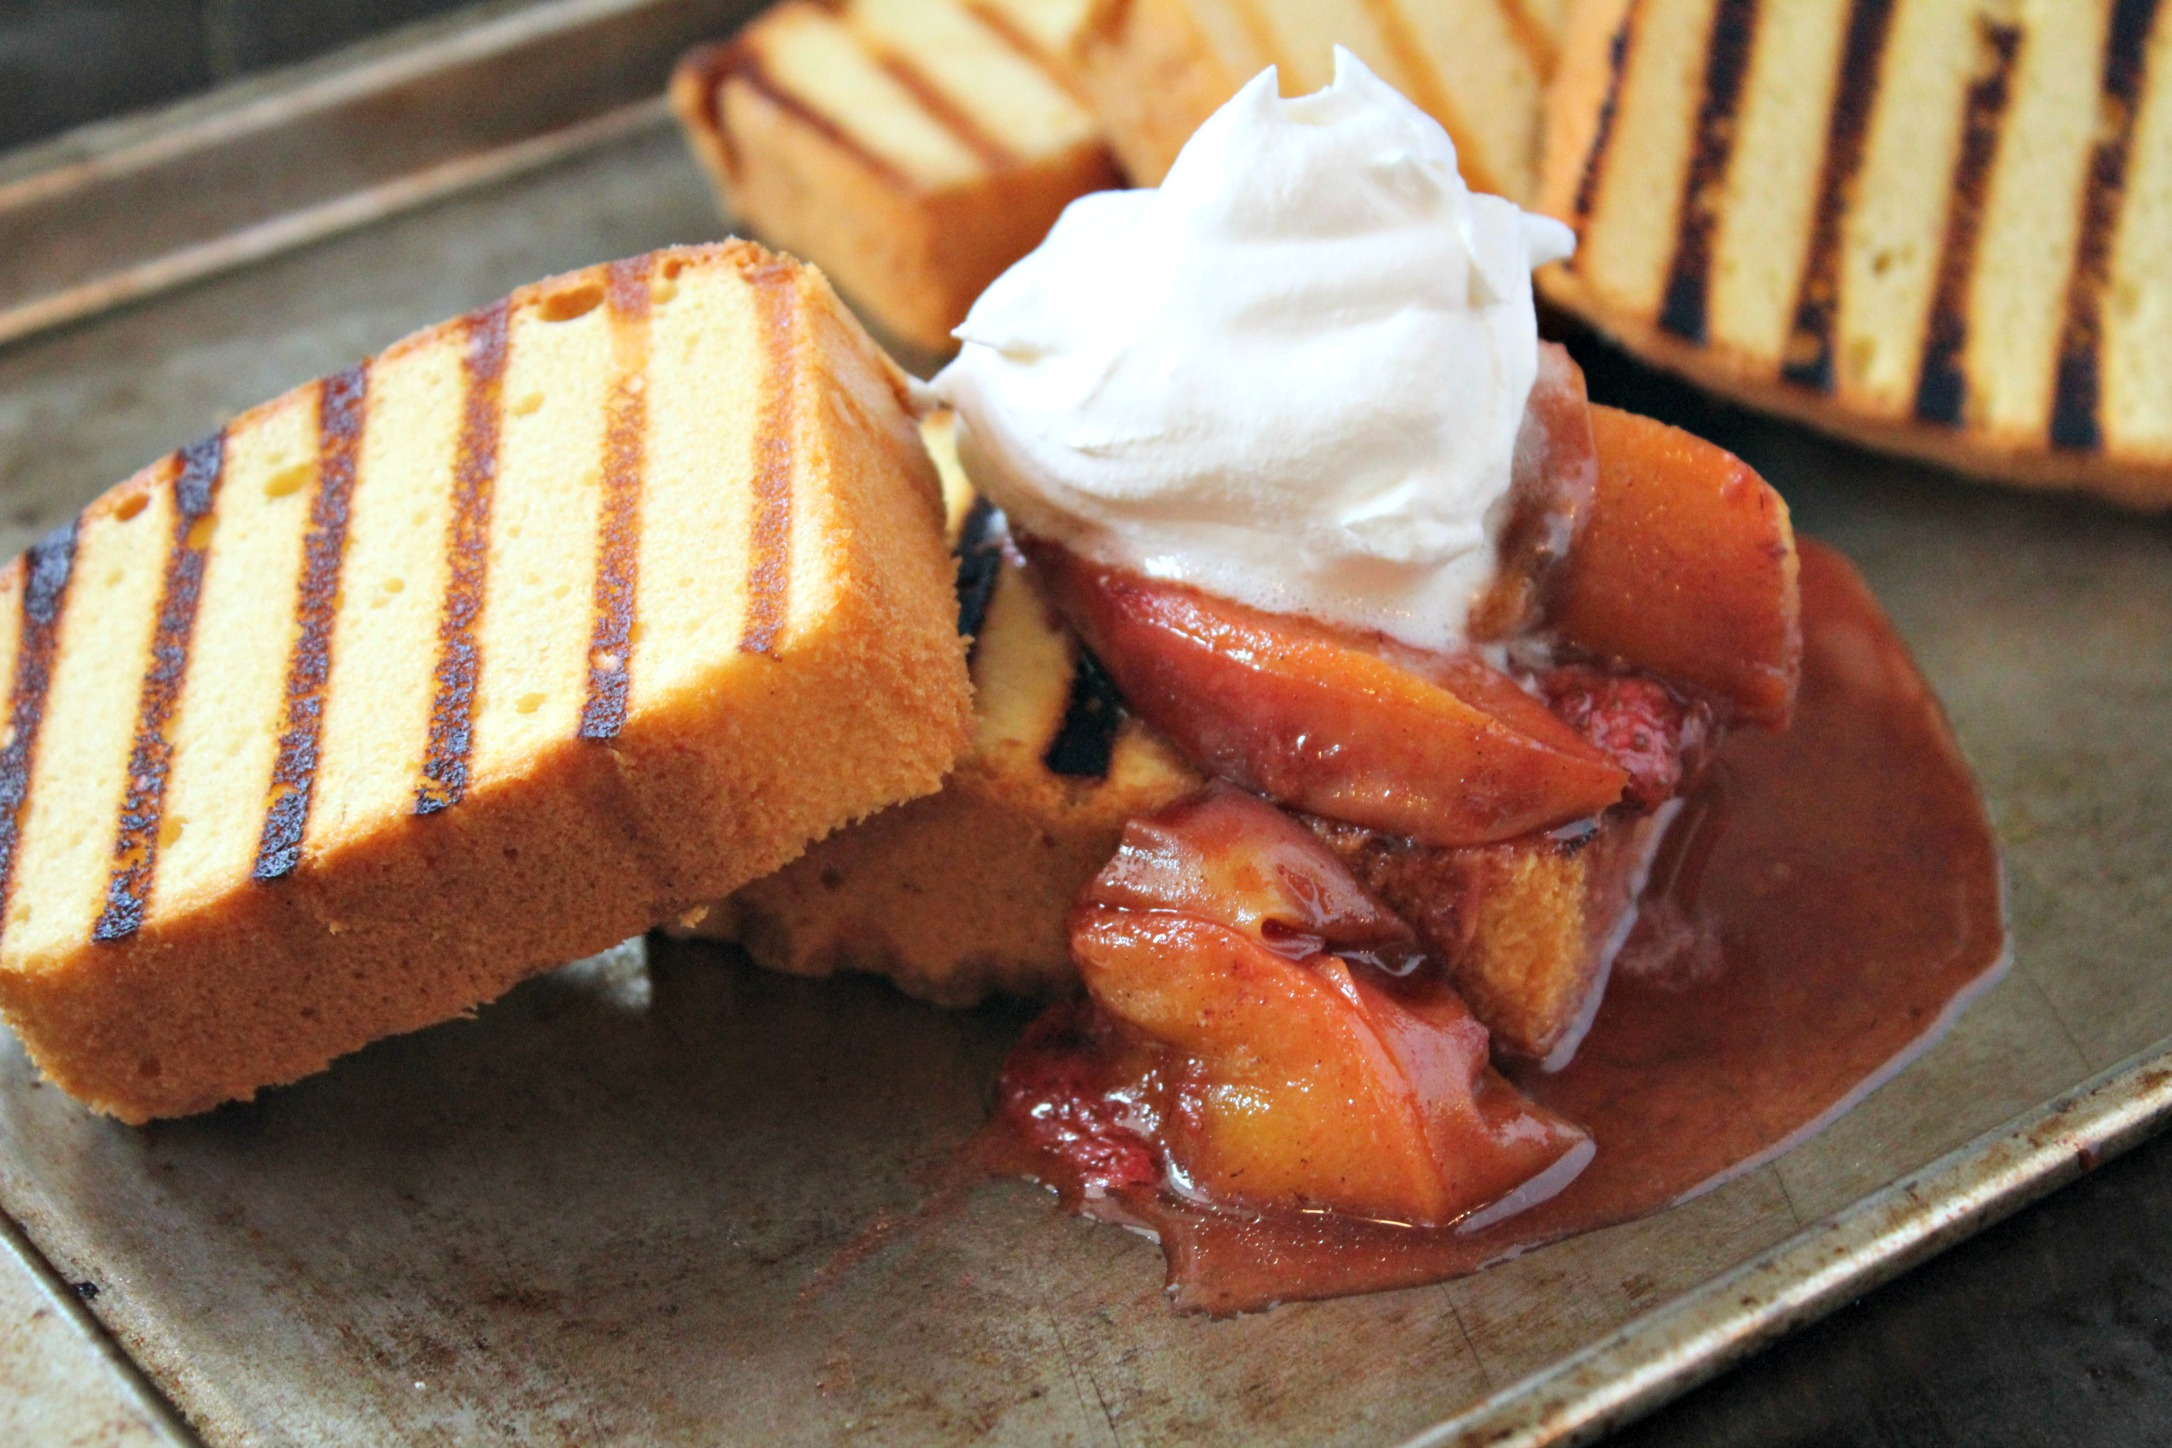 Grilled Pound Cake with Fruit